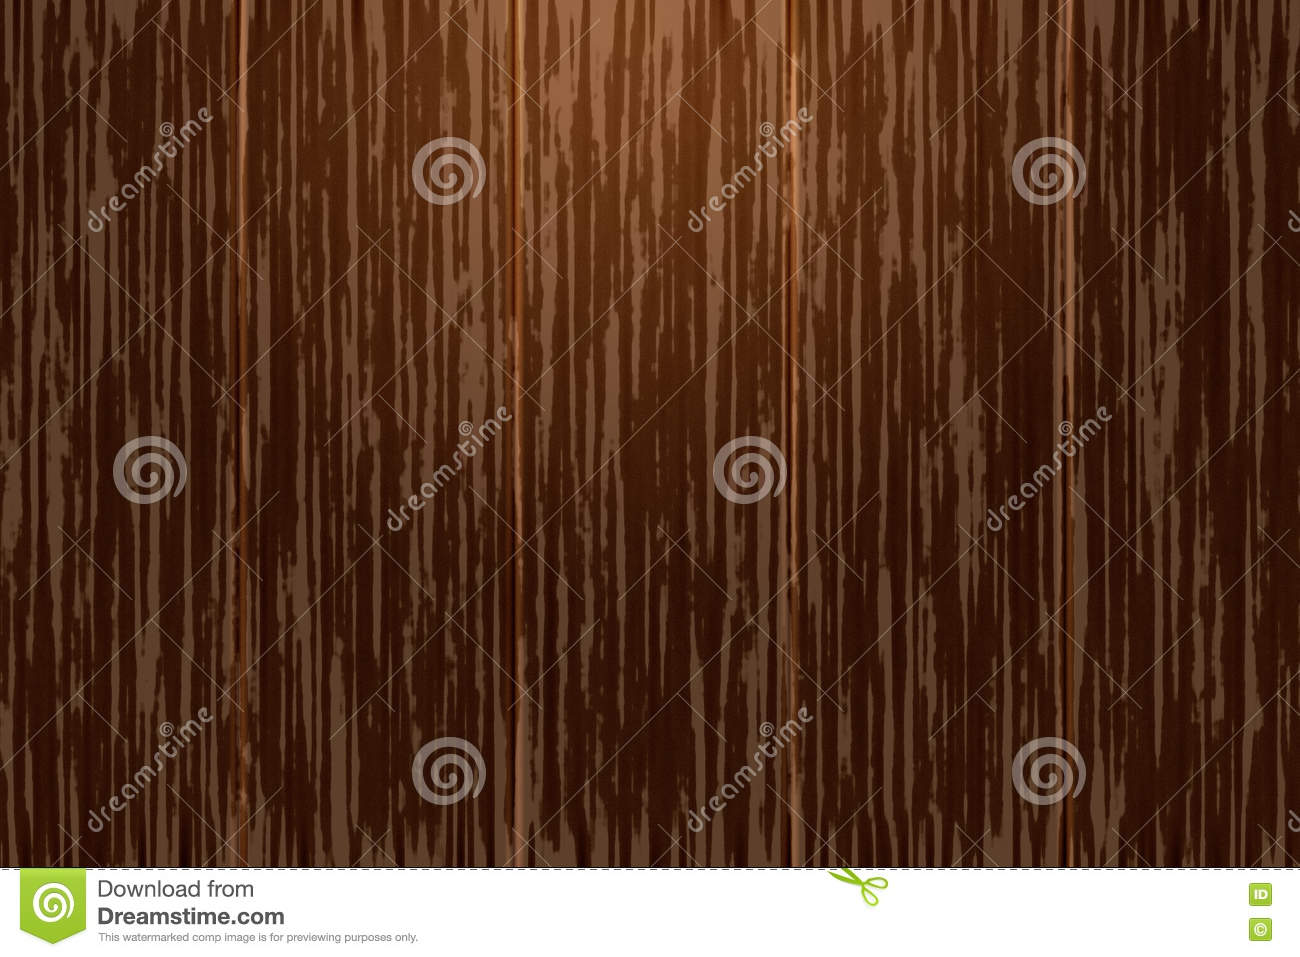 Download Wood Texture Create By Adobe Photoshop Stock Image   Image Of  Furniture, Grain: